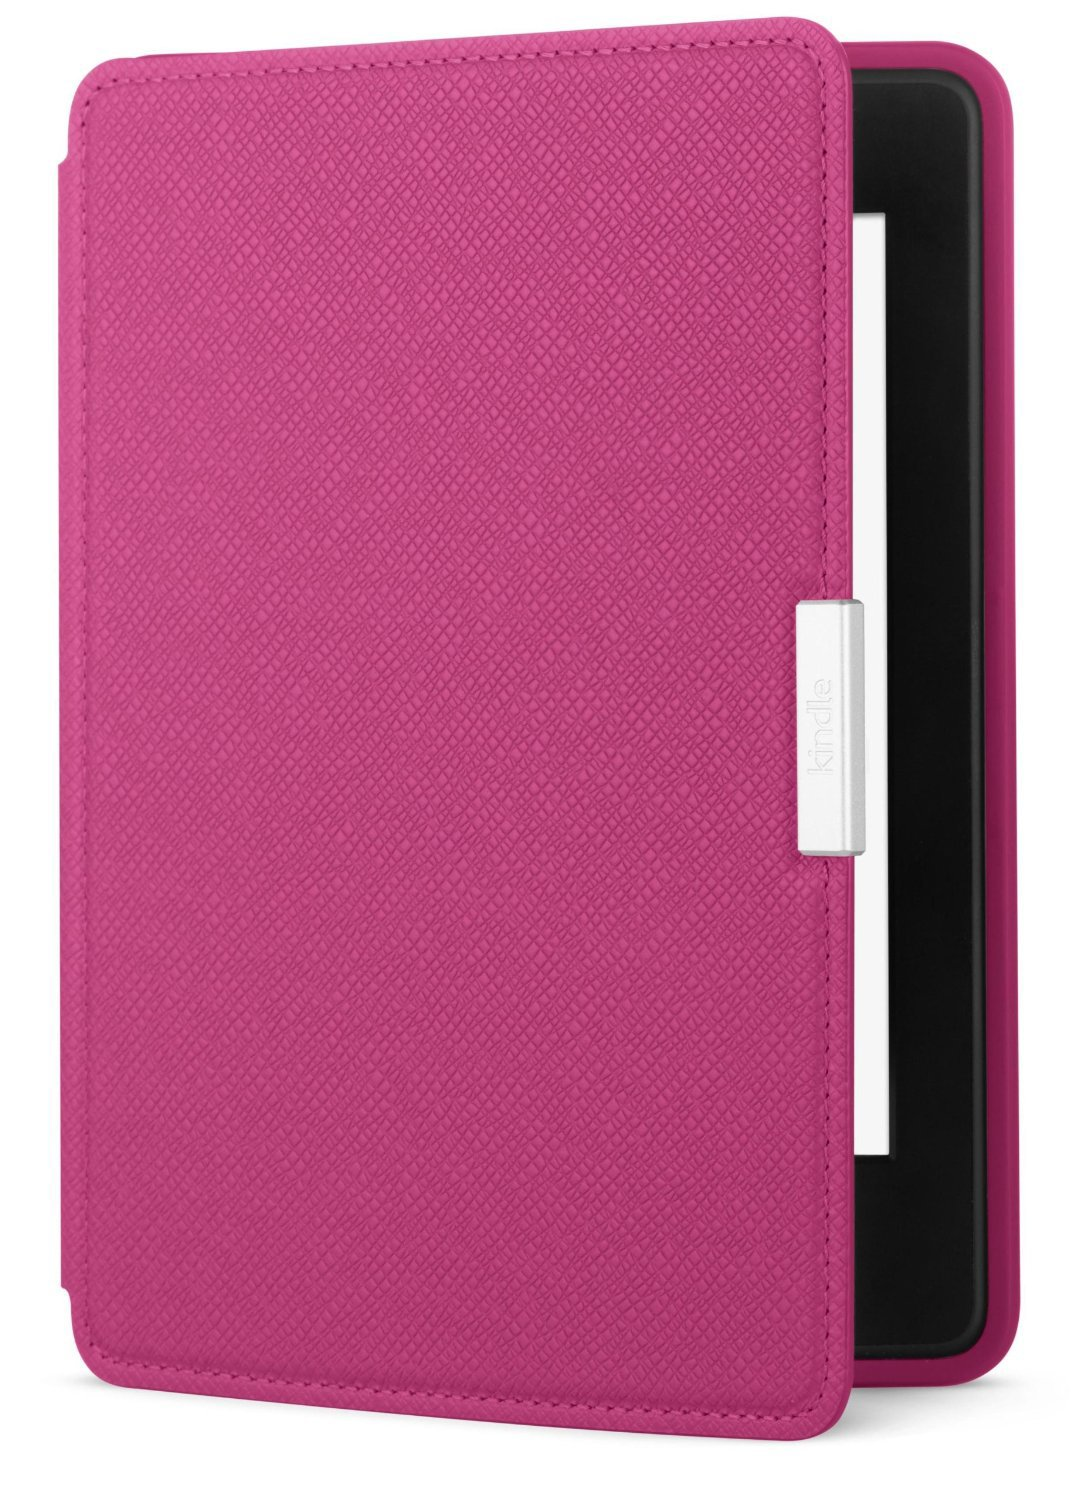 Чехол Leather Cover для Amazon Kindle Paperwhite Fuchsia (Розовый)